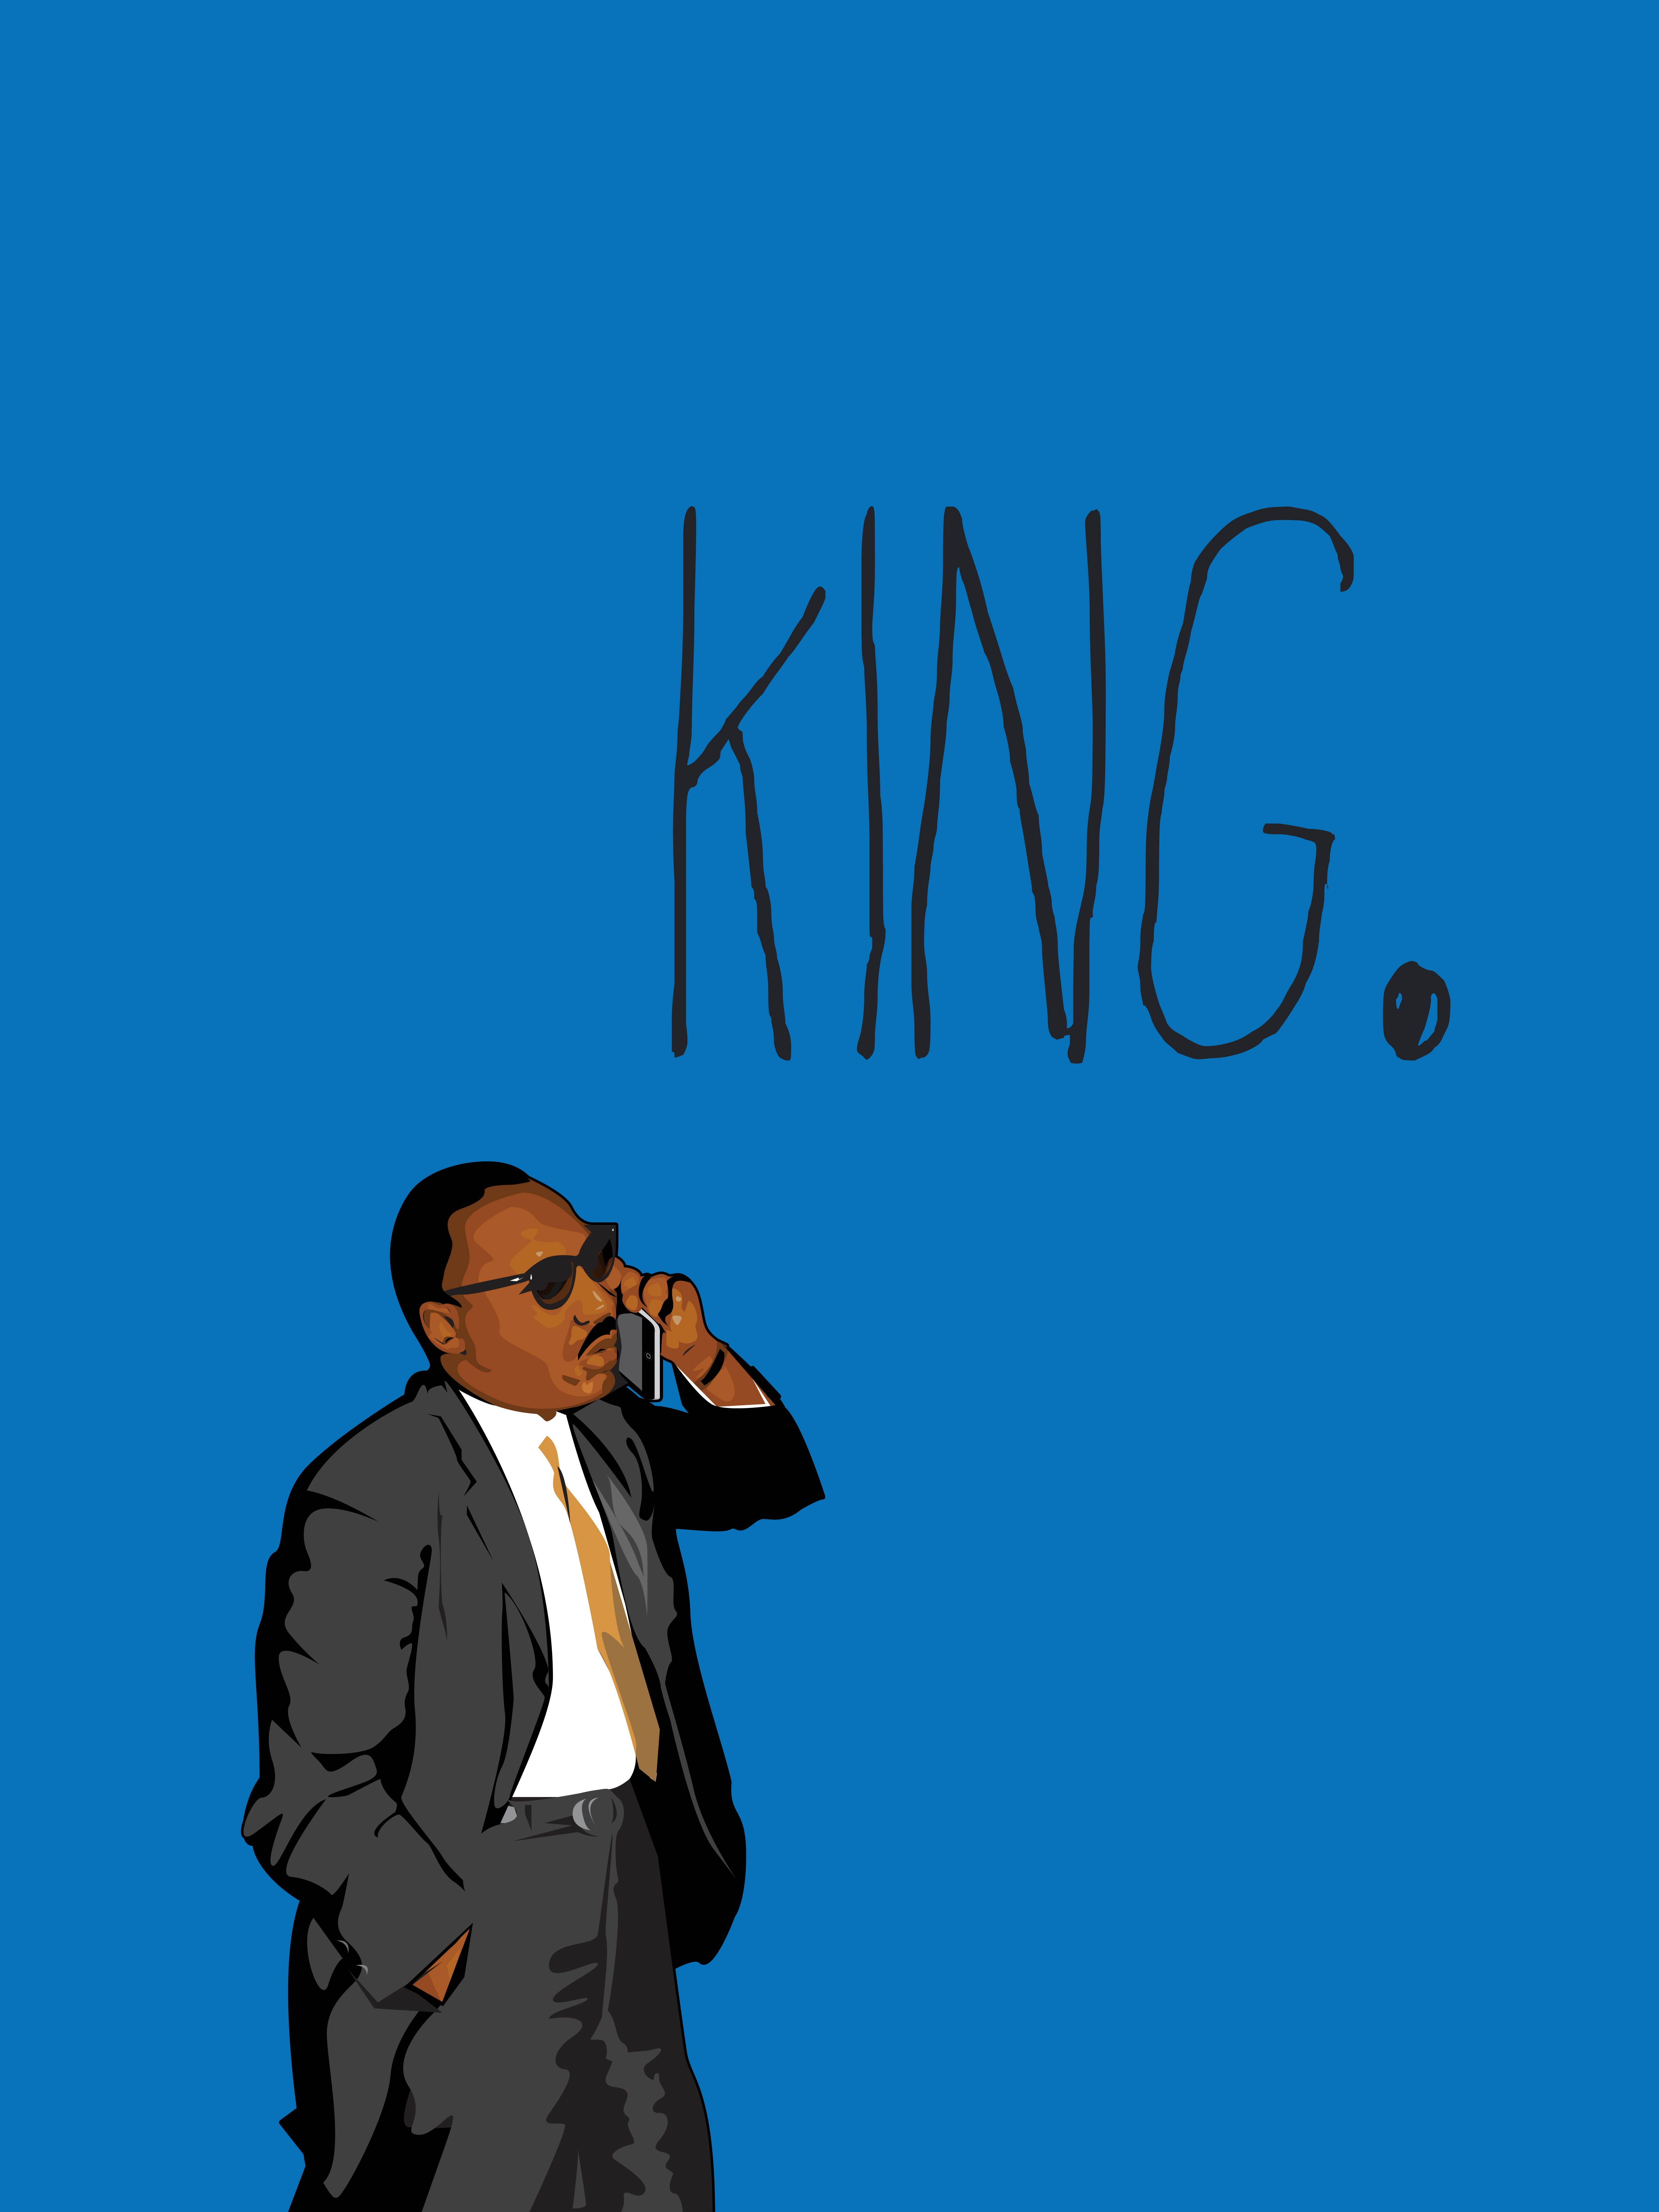 MLK ill (The Cool is Infinite Series)